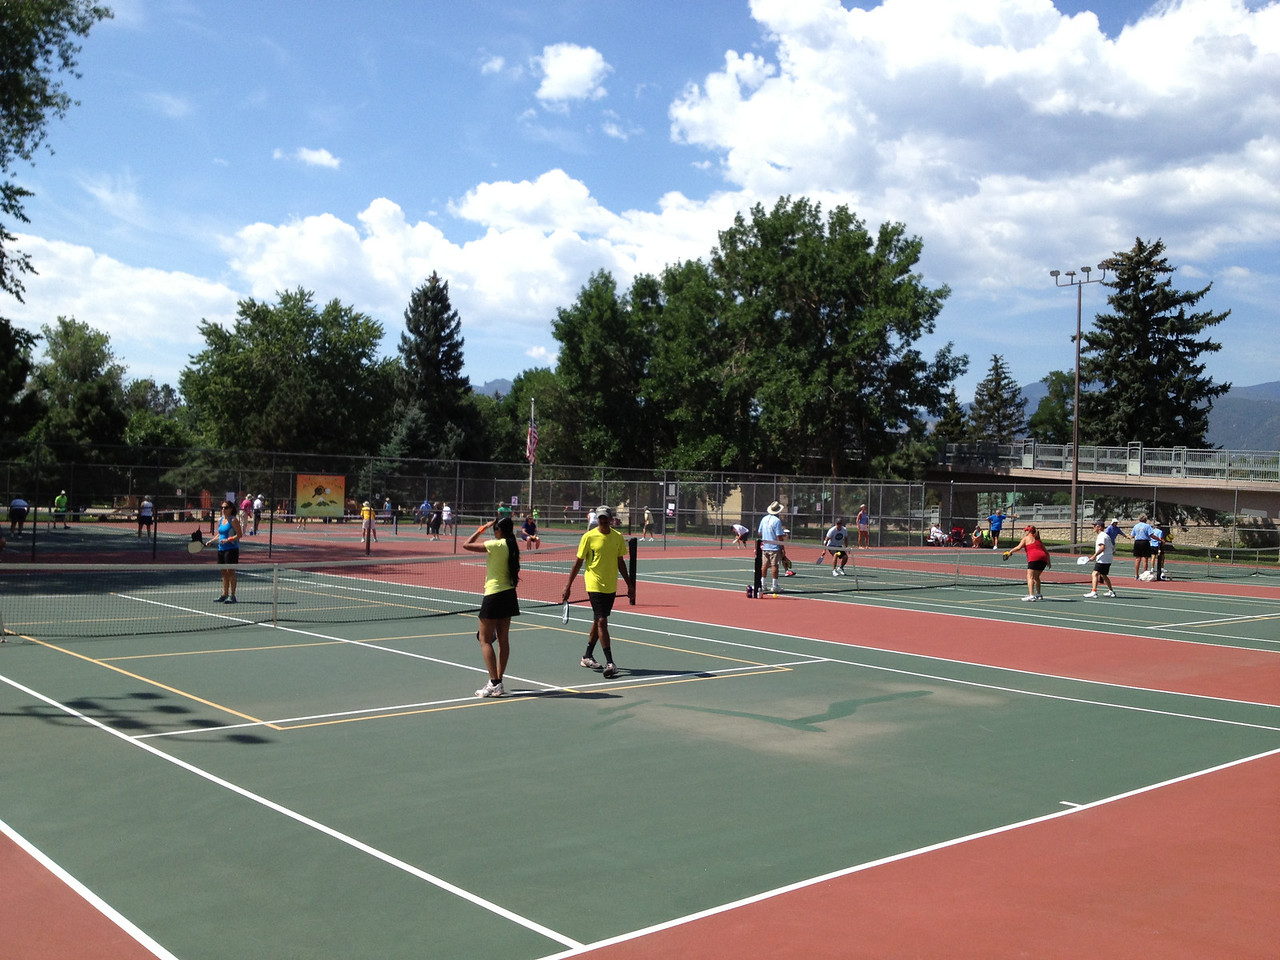 Let the Rocky Mtn State Games begin - six courts in action.